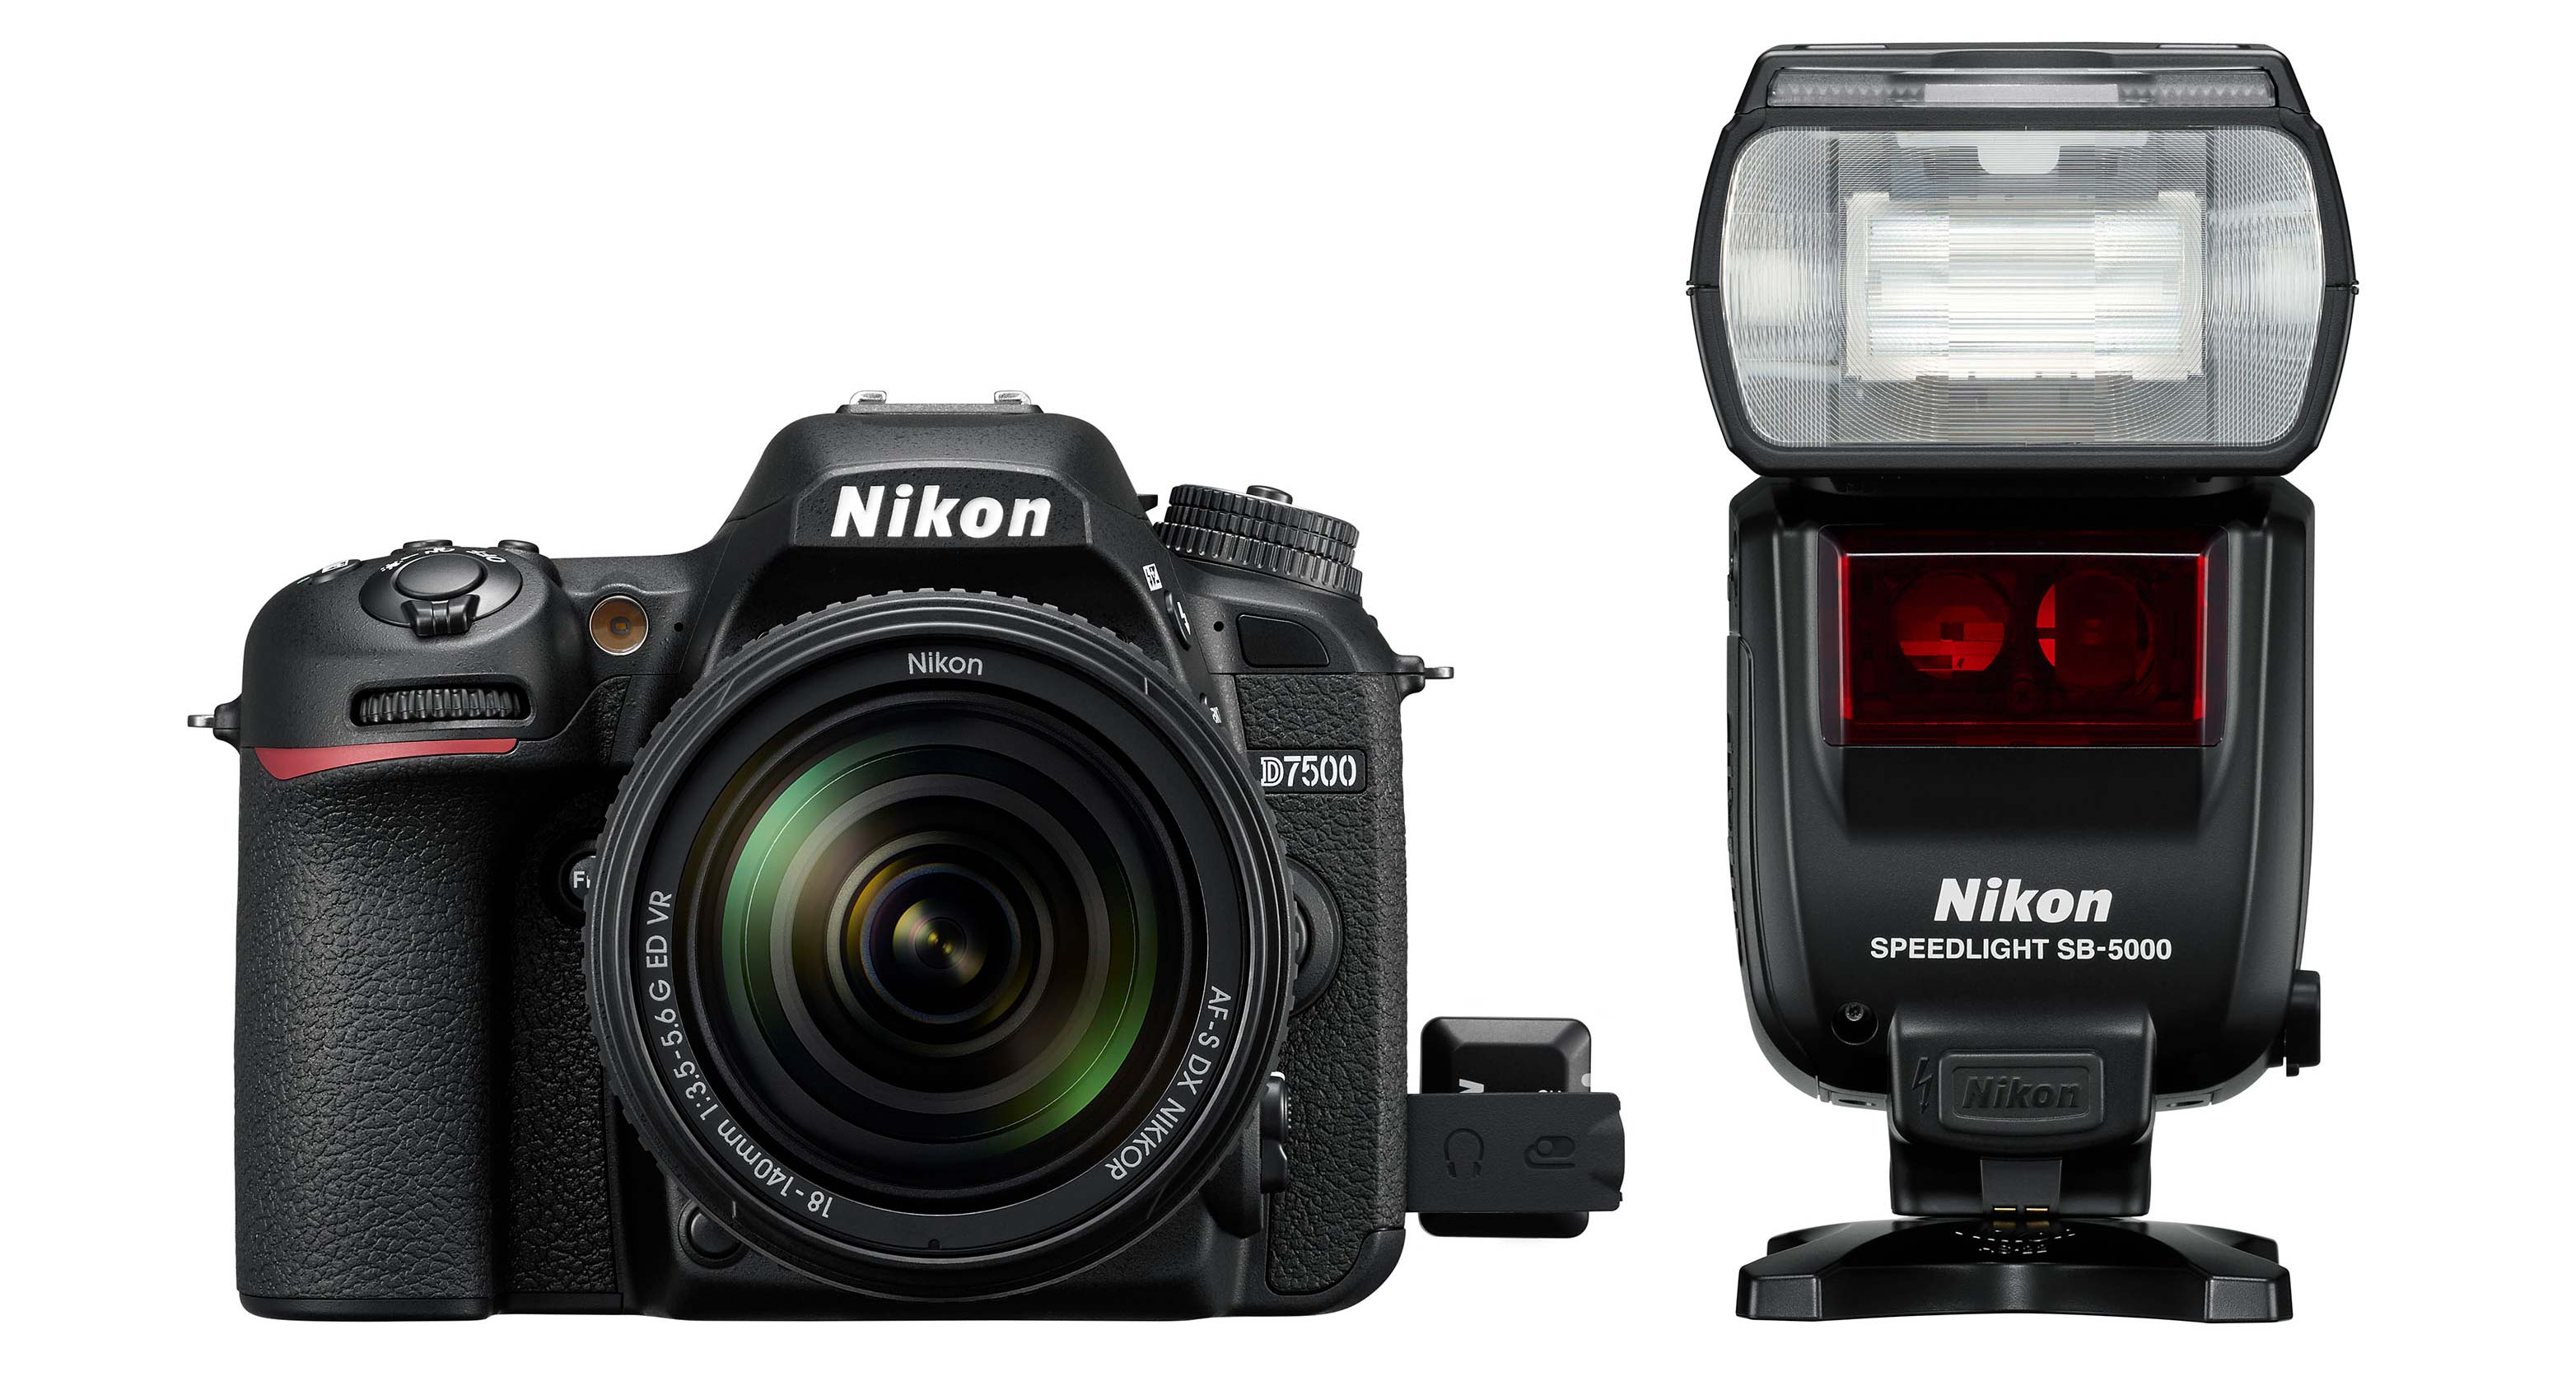 Nikon D5600 vs D7500: Which Should You Buy? – Light And Matter